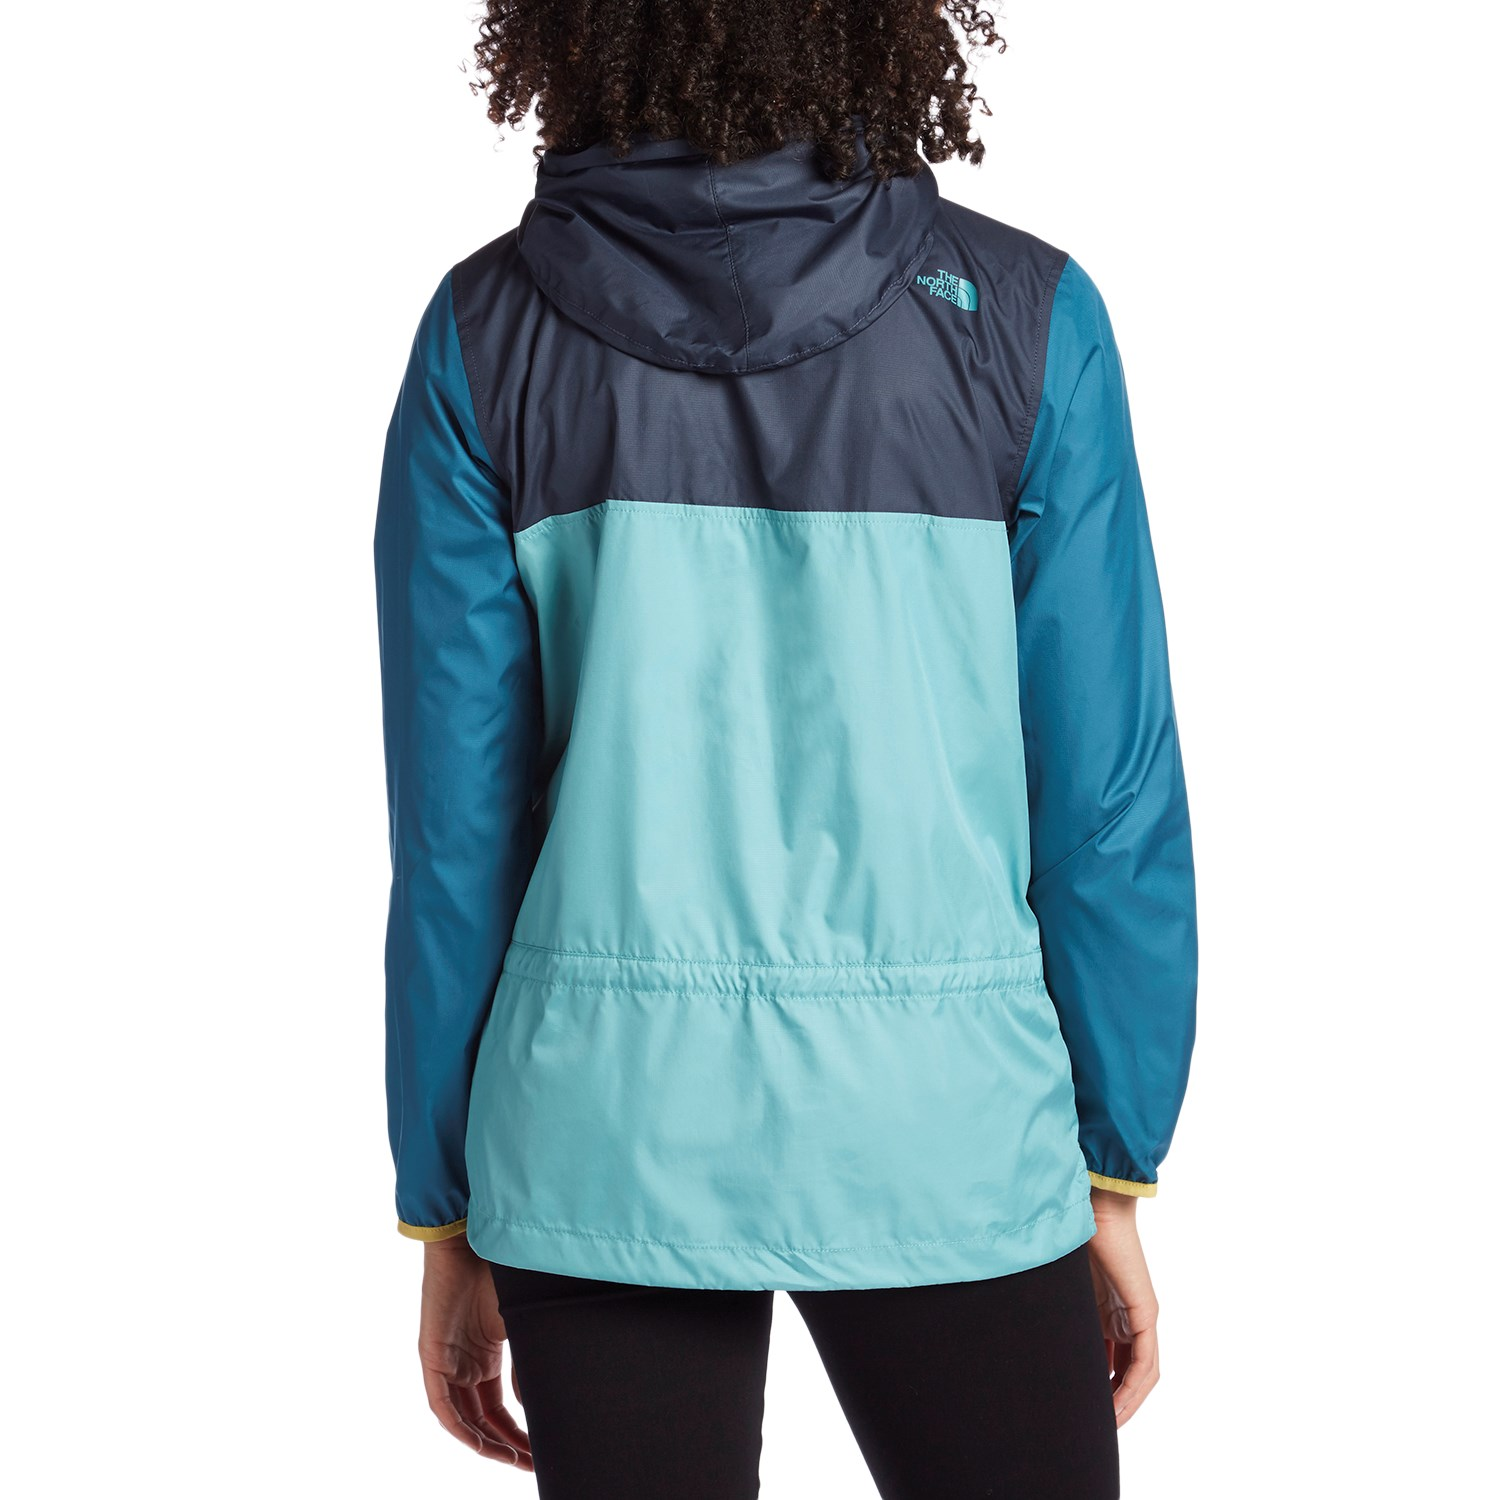 dad216e76ac The North Face Fanorak Pullover Jacket - Women s